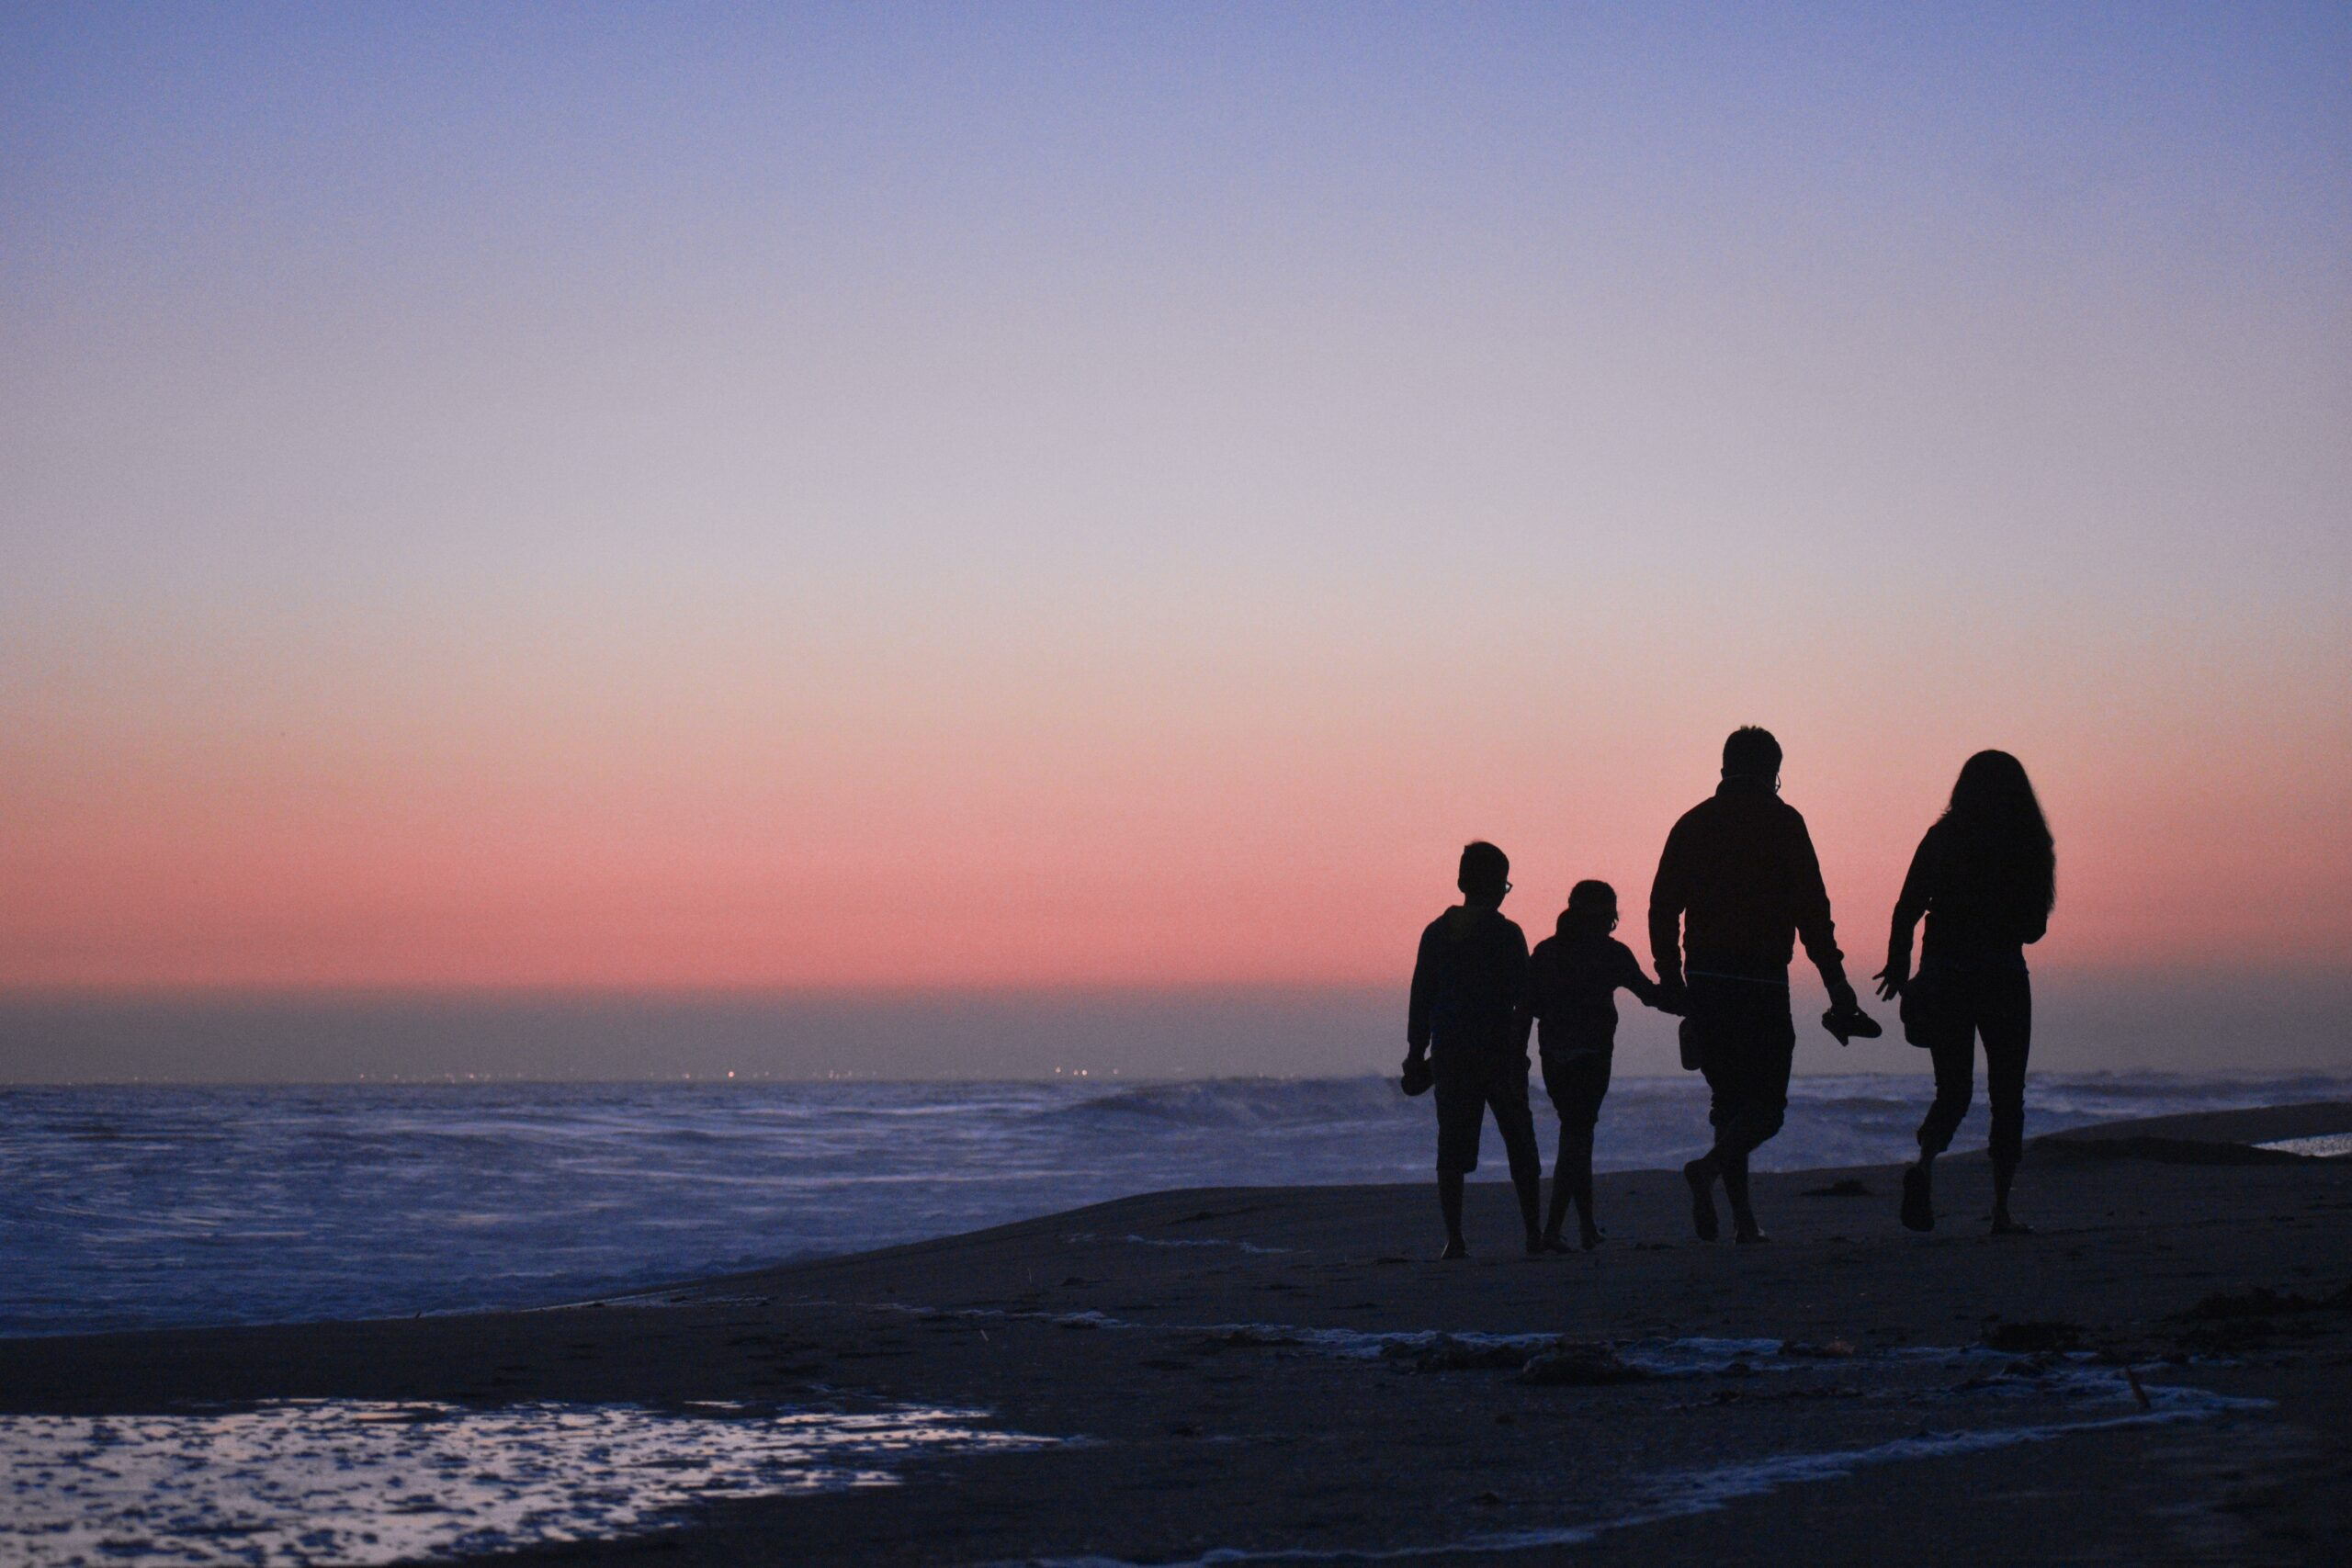 'When everyone's walking on eggshells, it can be really counterproductive' – Working with family businesses